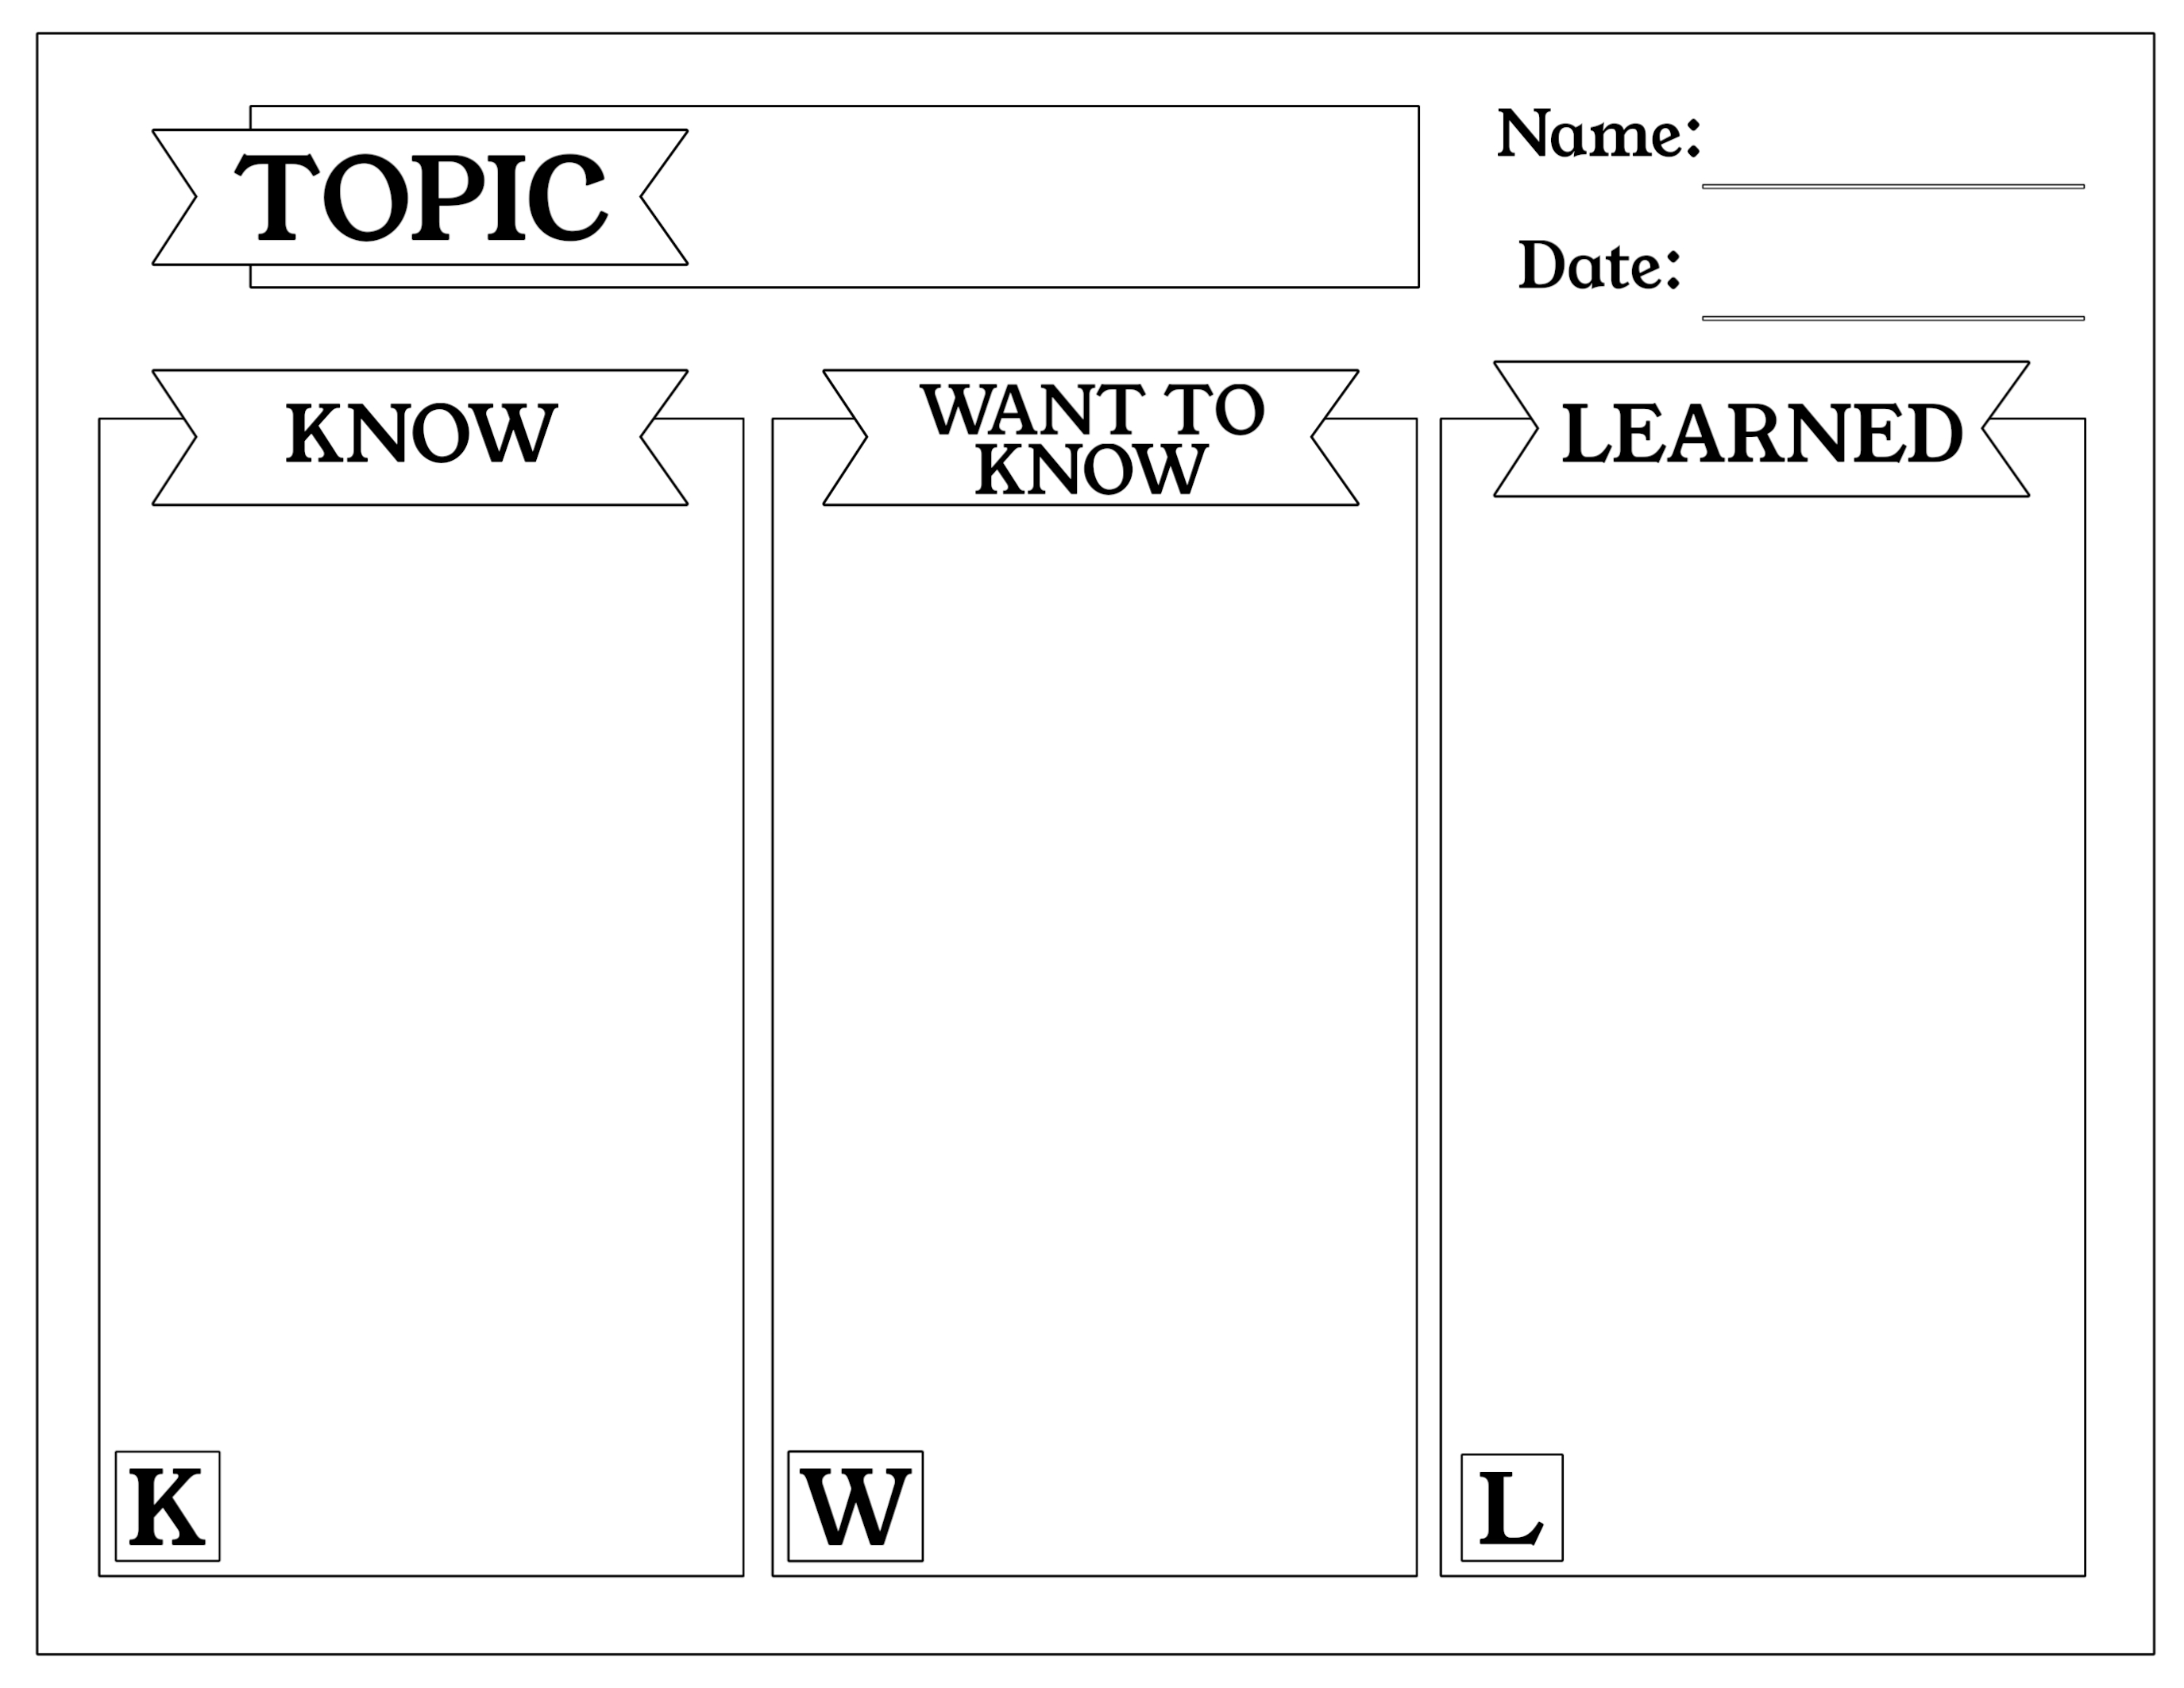 picture regarding Free Printable Kwl Chart referred to as No cost KWL Chart Printable Impression Organizer - Paper Path Style